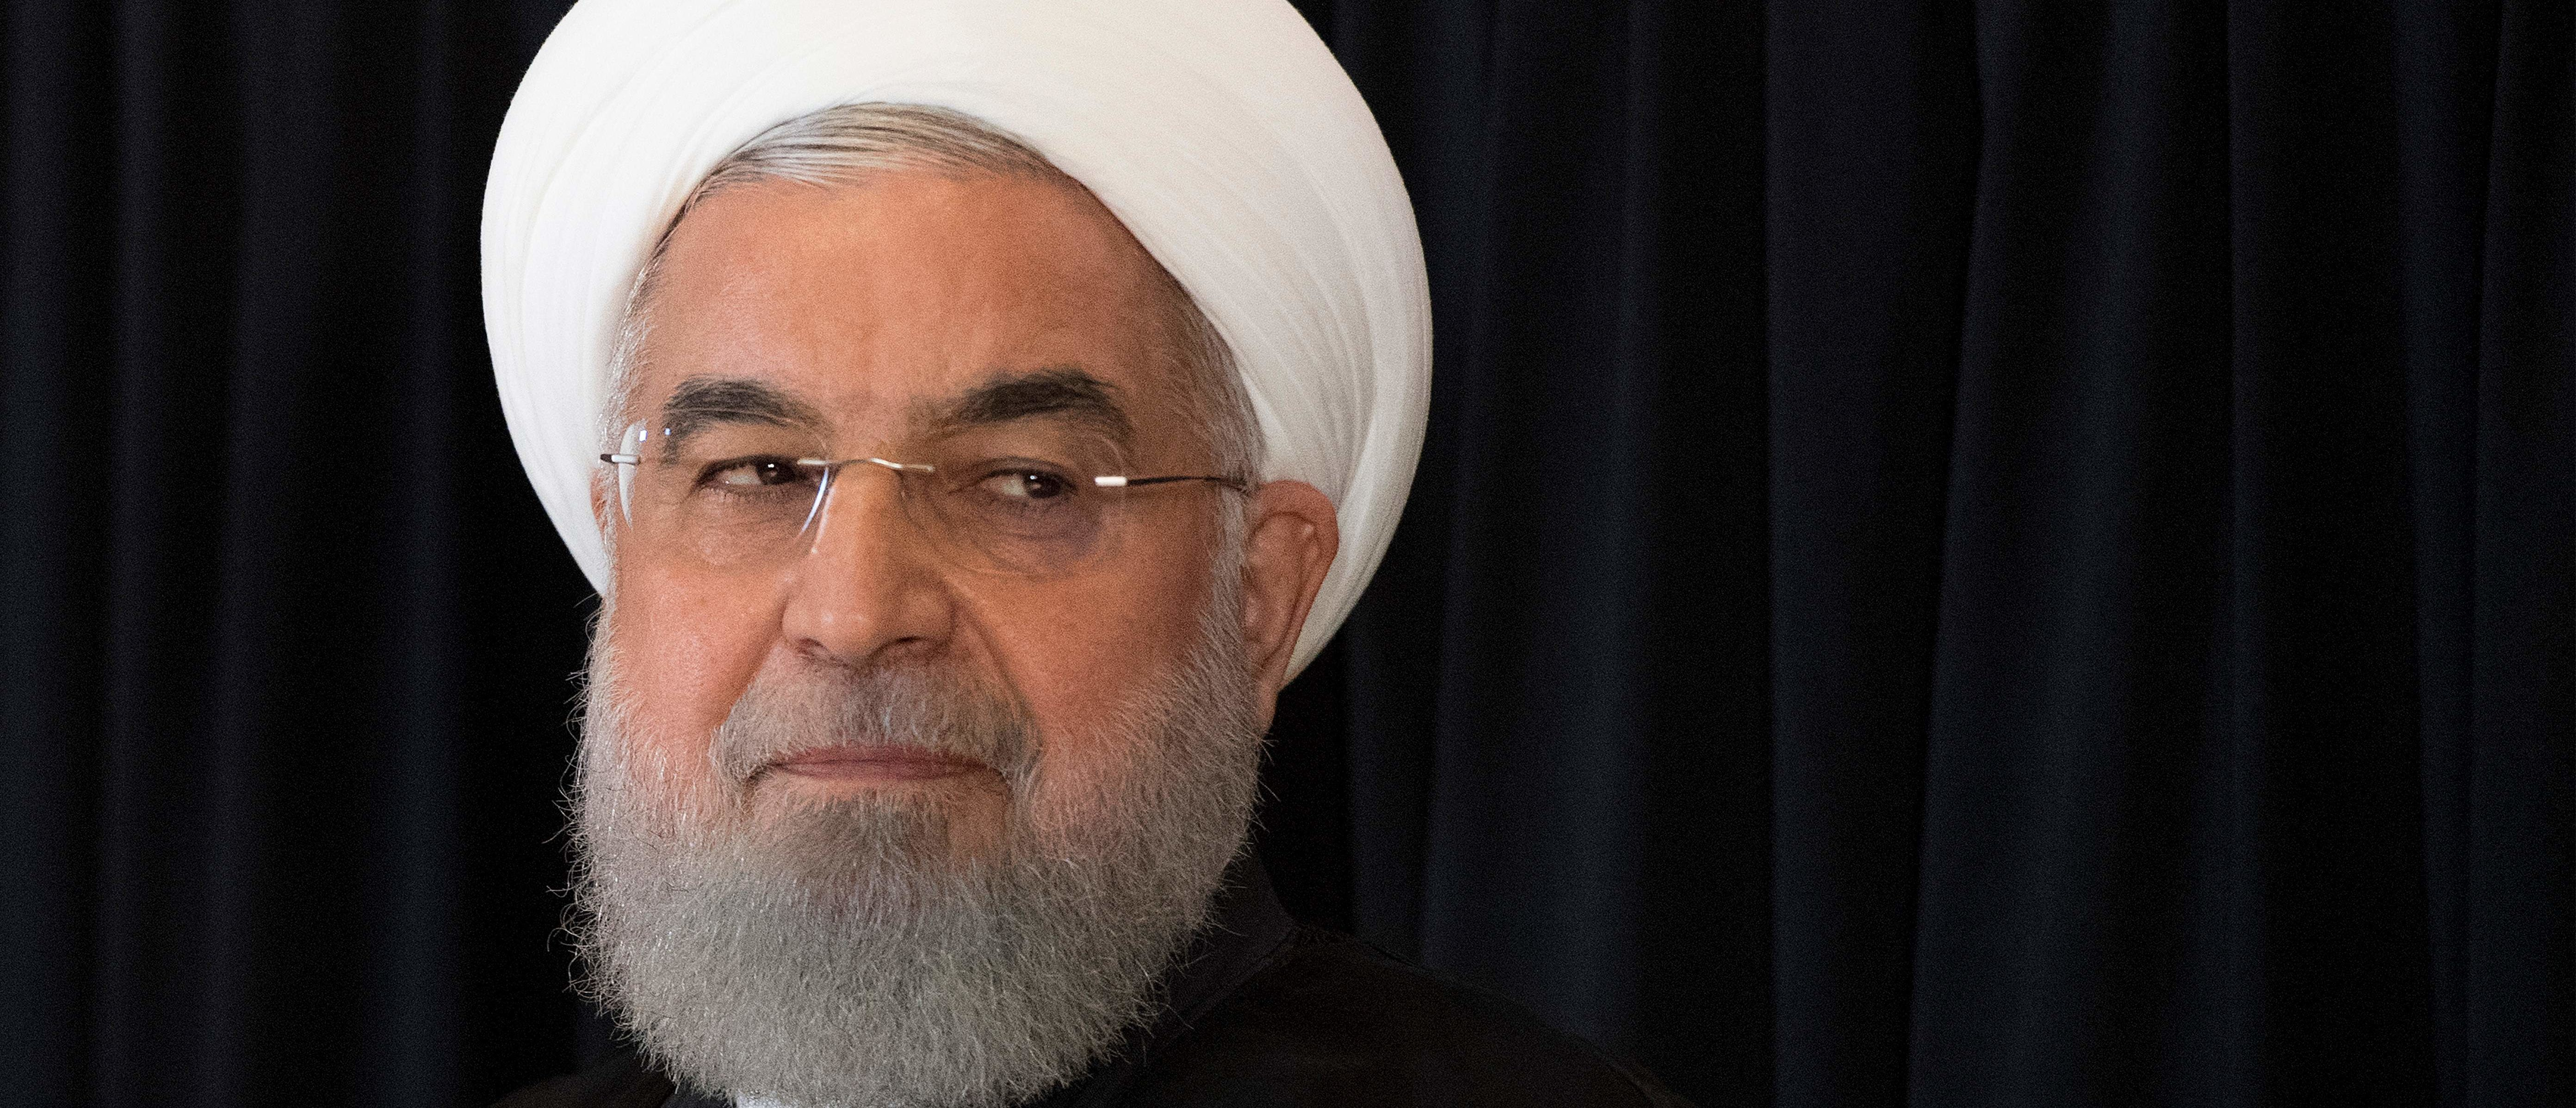 Iranian President Hassan Rouhani speaks during a press conference in New York on September 26, 2018,on the sidelines of the United Nations General Assembly. (JIM WATSON/AFP/Getty Images)